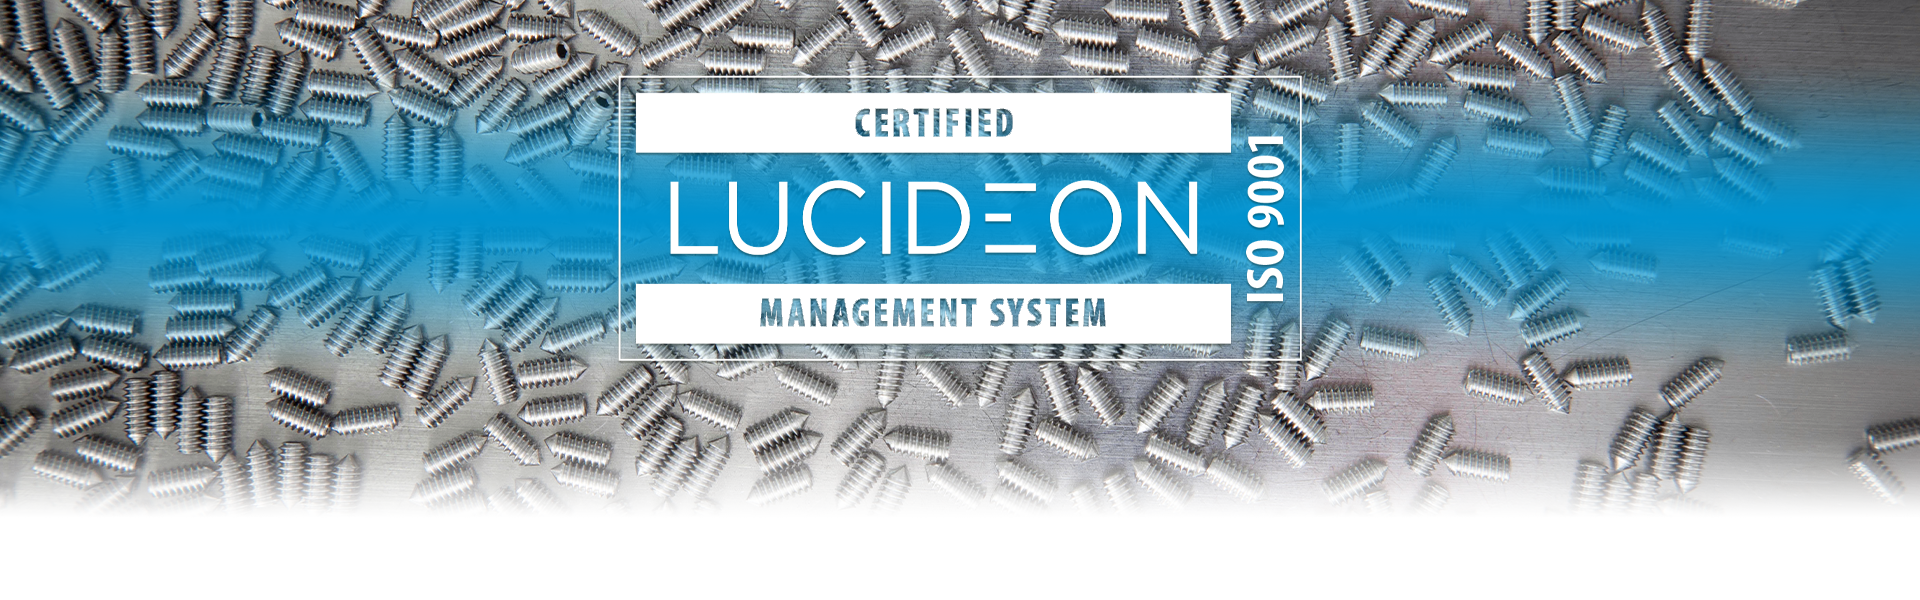 Lucideon ISO 9001 Certified